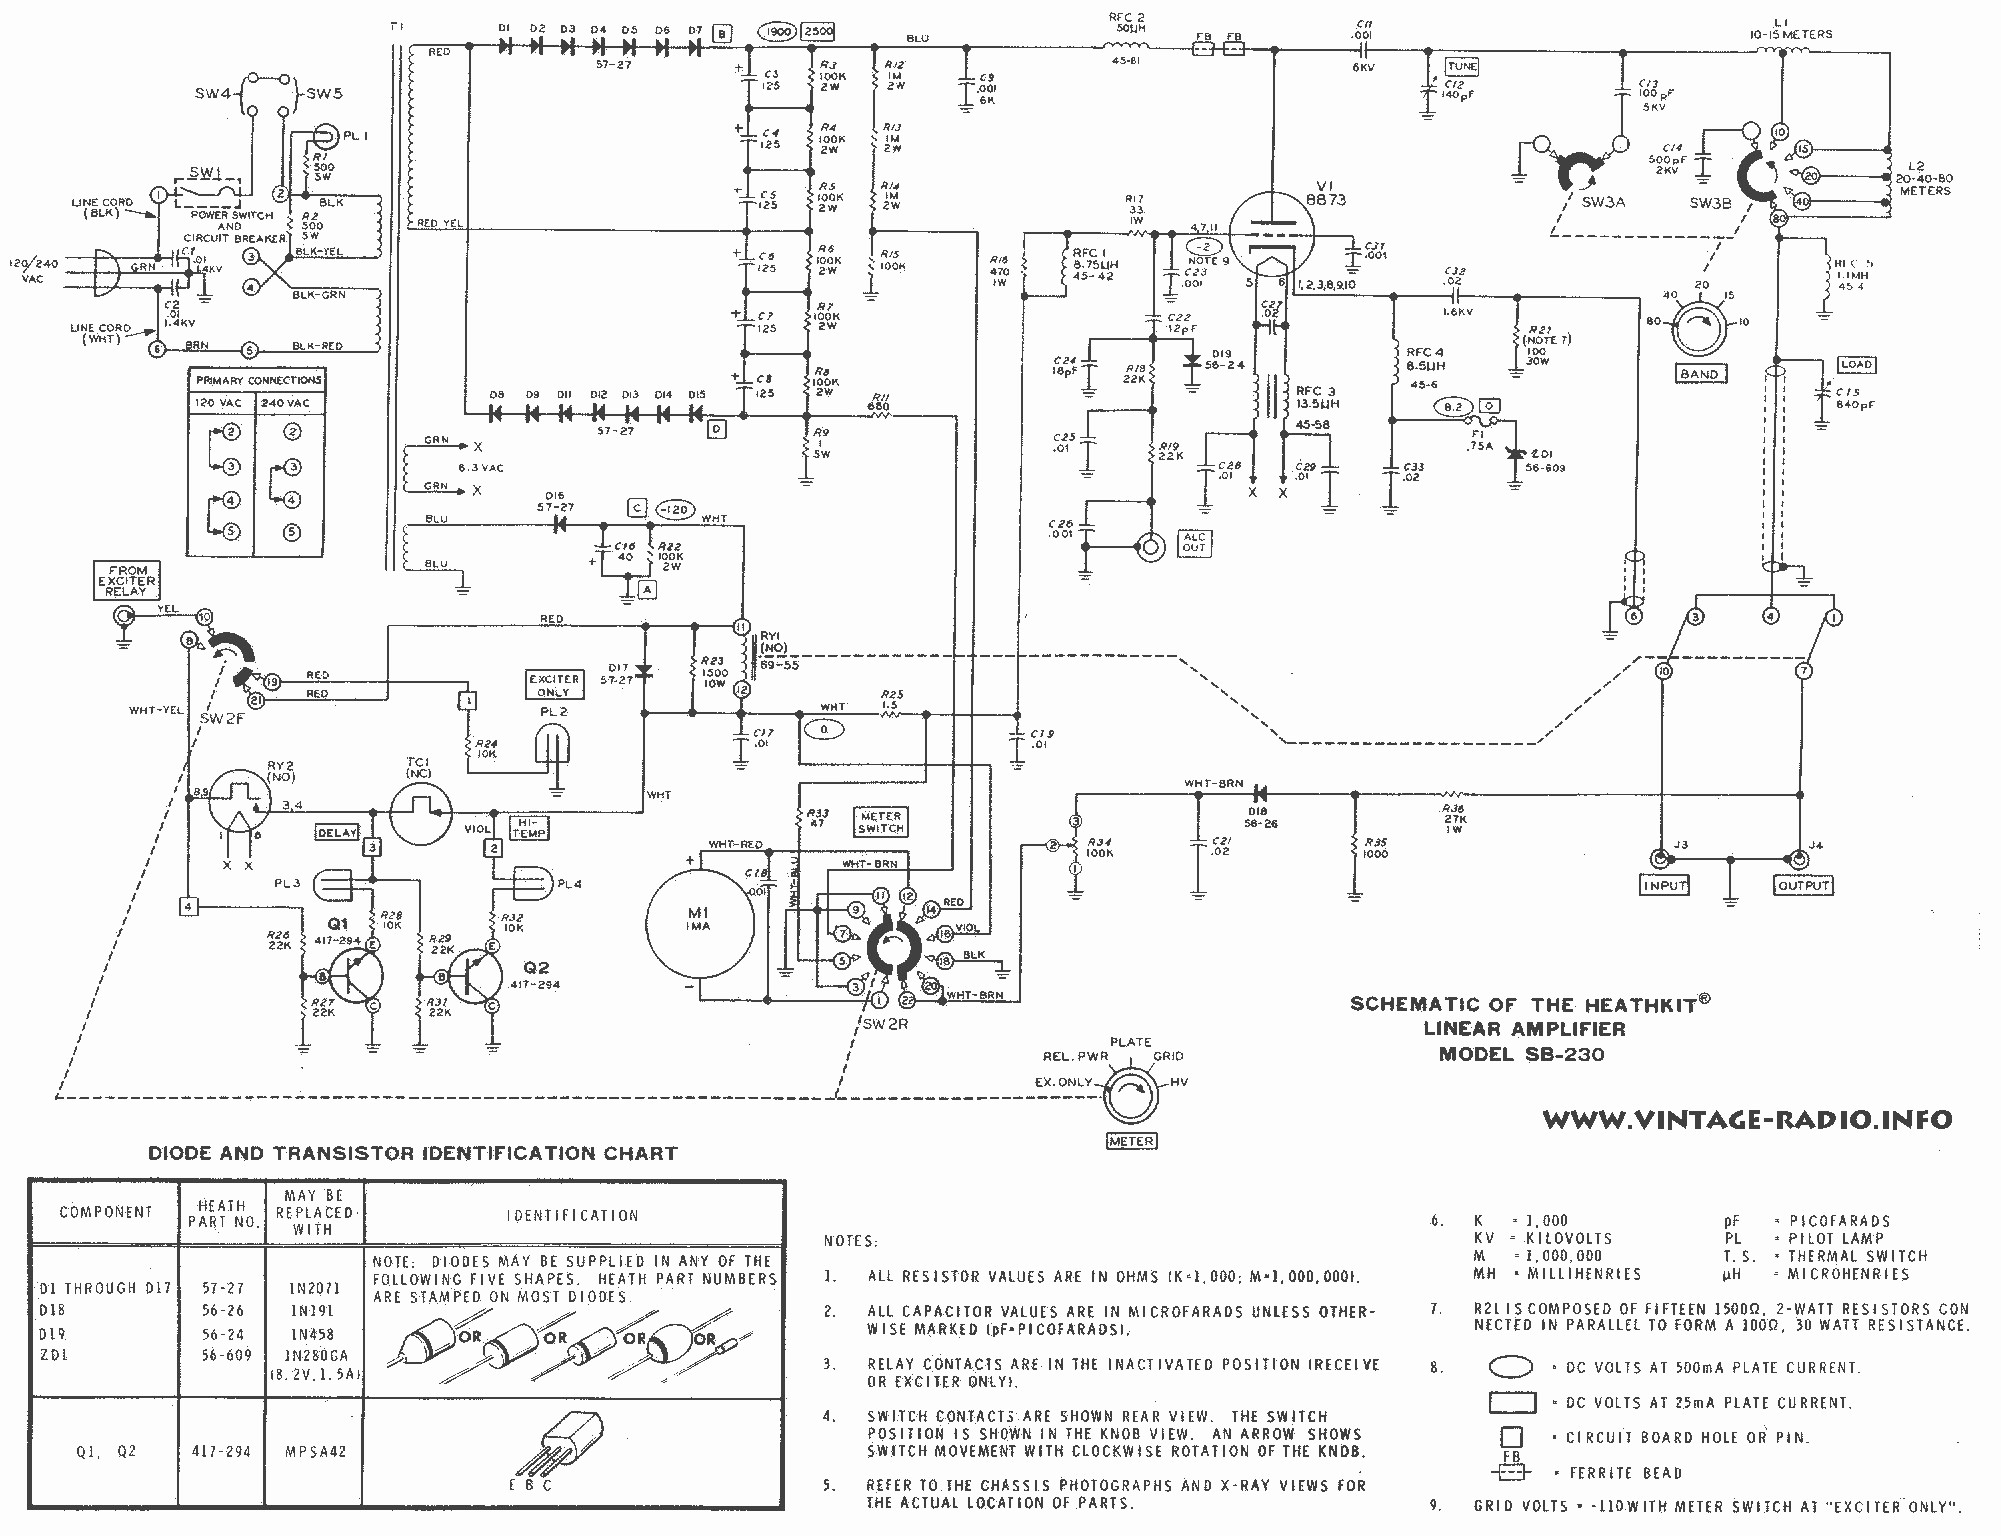 golden technologies lift chair wiring diagram